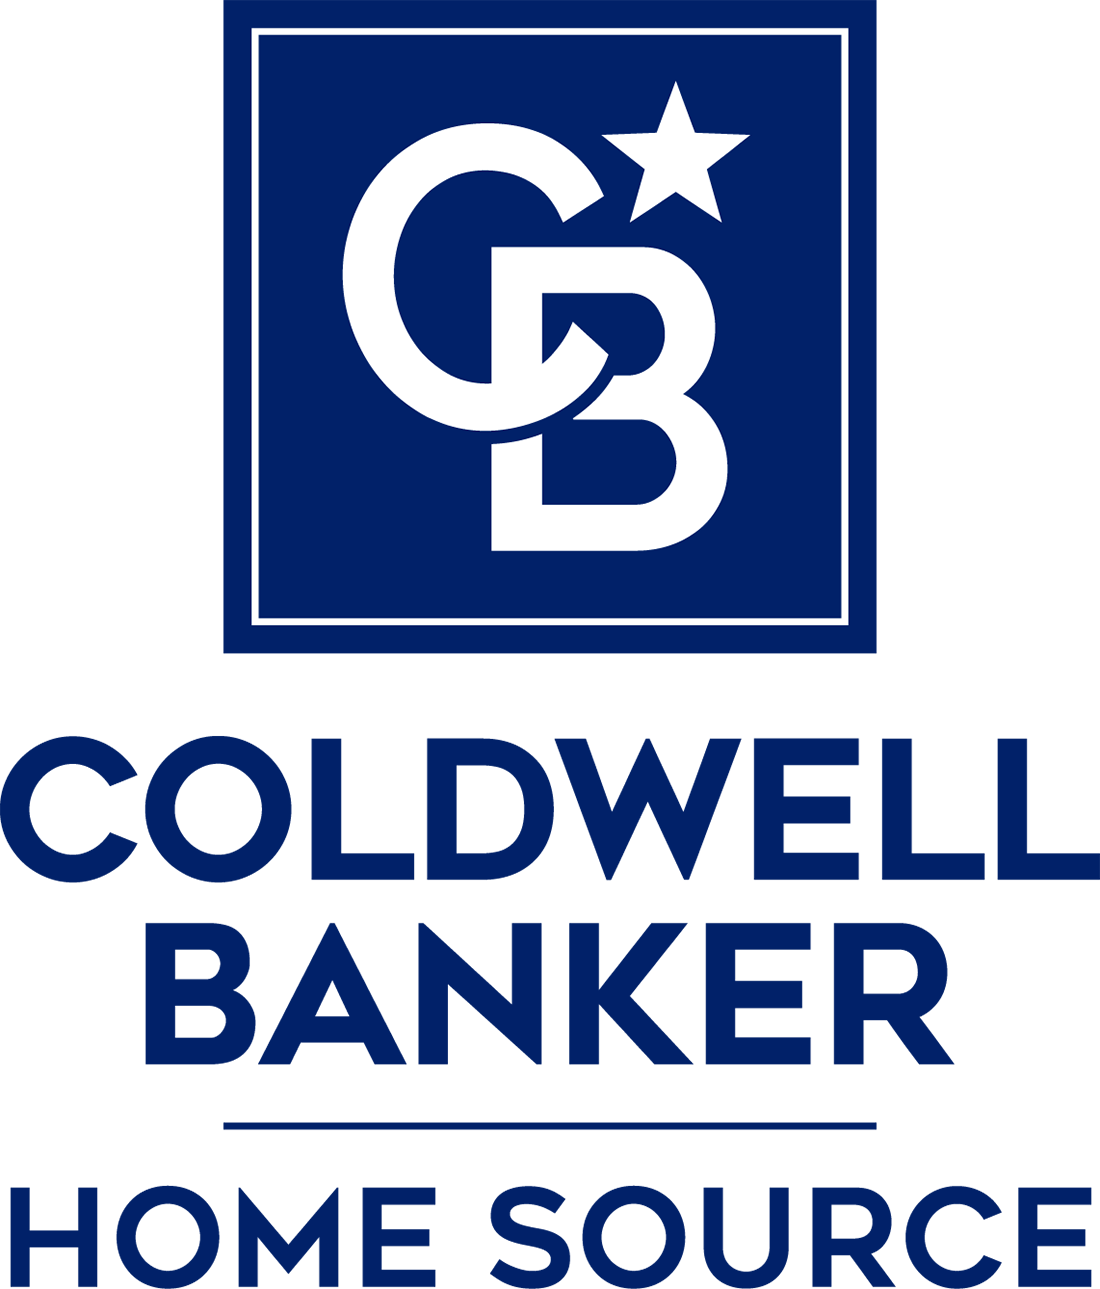 Claudia Rothwell - Coldwell Banker Home Source Logo